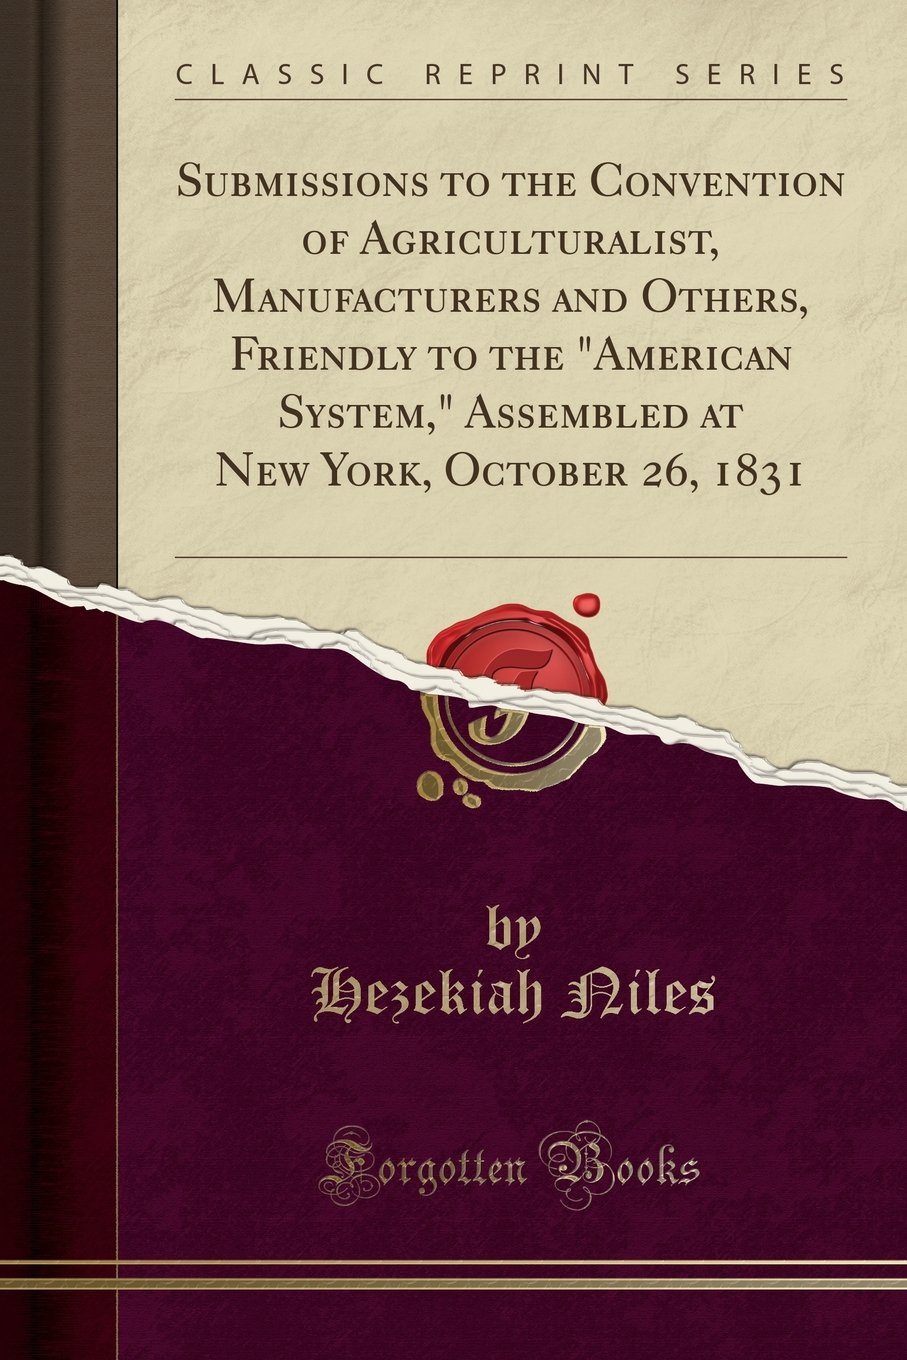 Submissions to the Convention of Agriculturalist, Manufacturers and Others, Friendly to the American System, Assembled at New York, October 26, 1831 (Classic Reprint) ebook